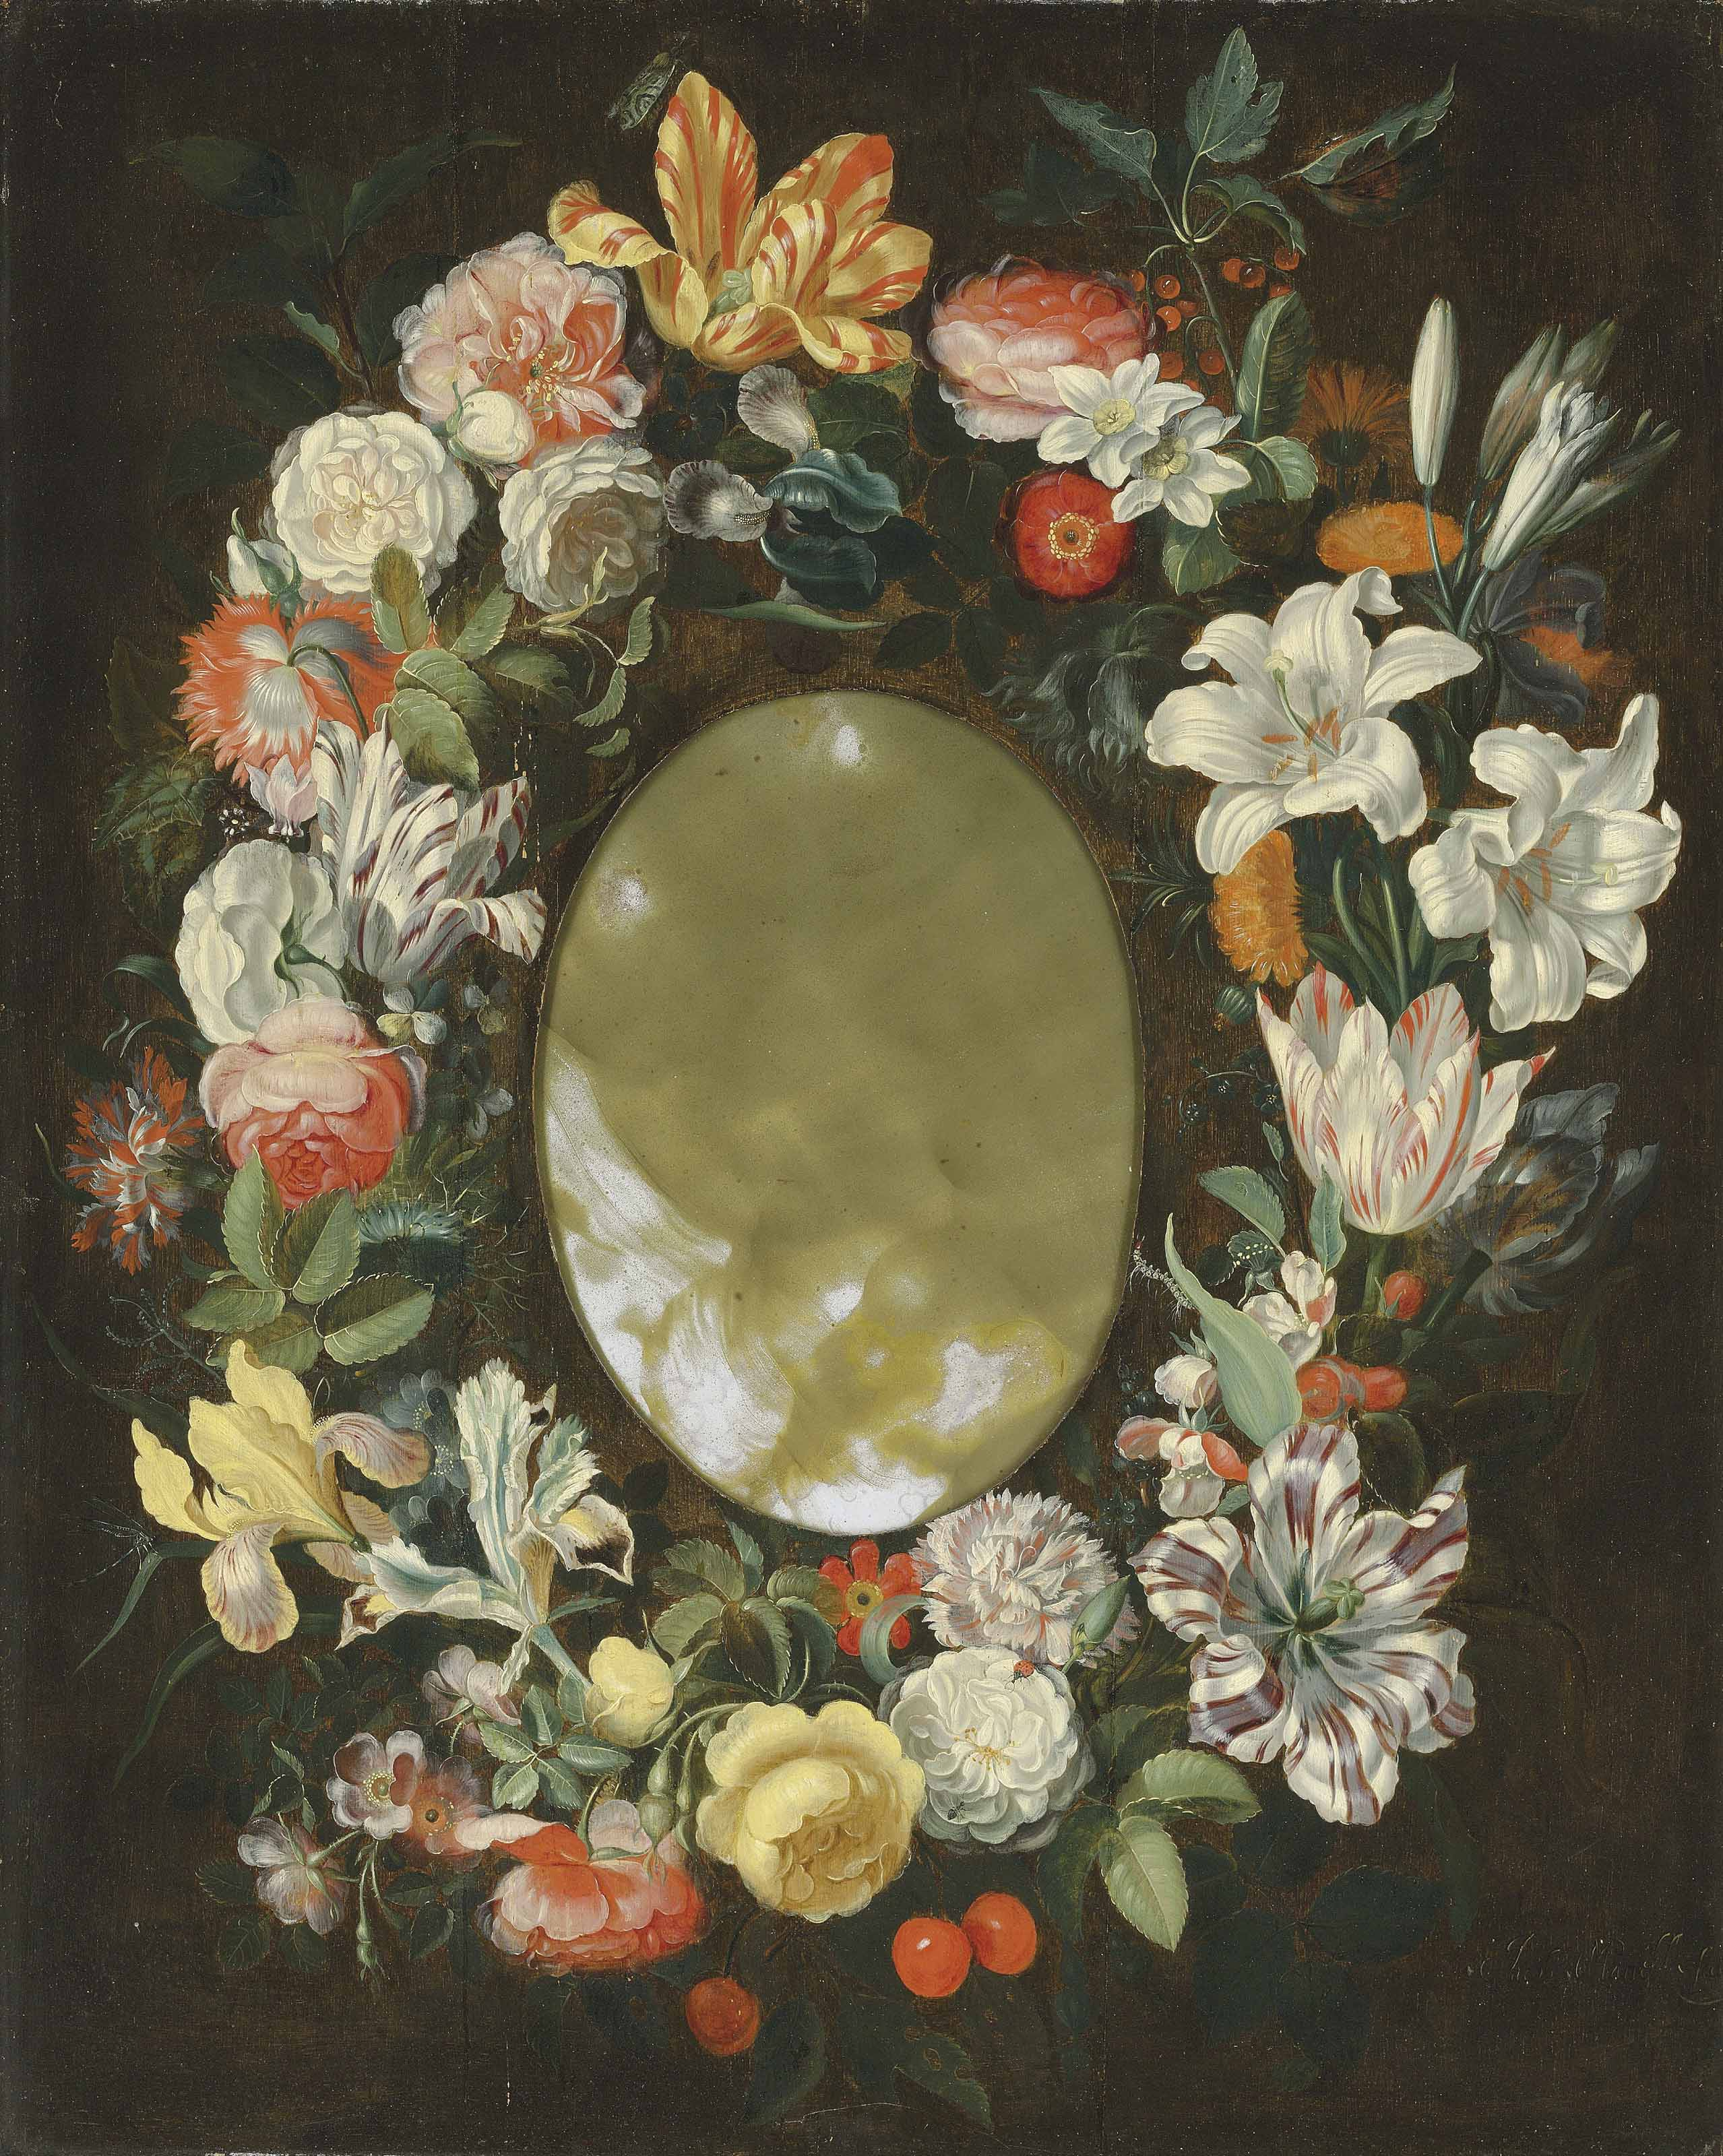 A wreath of flowers